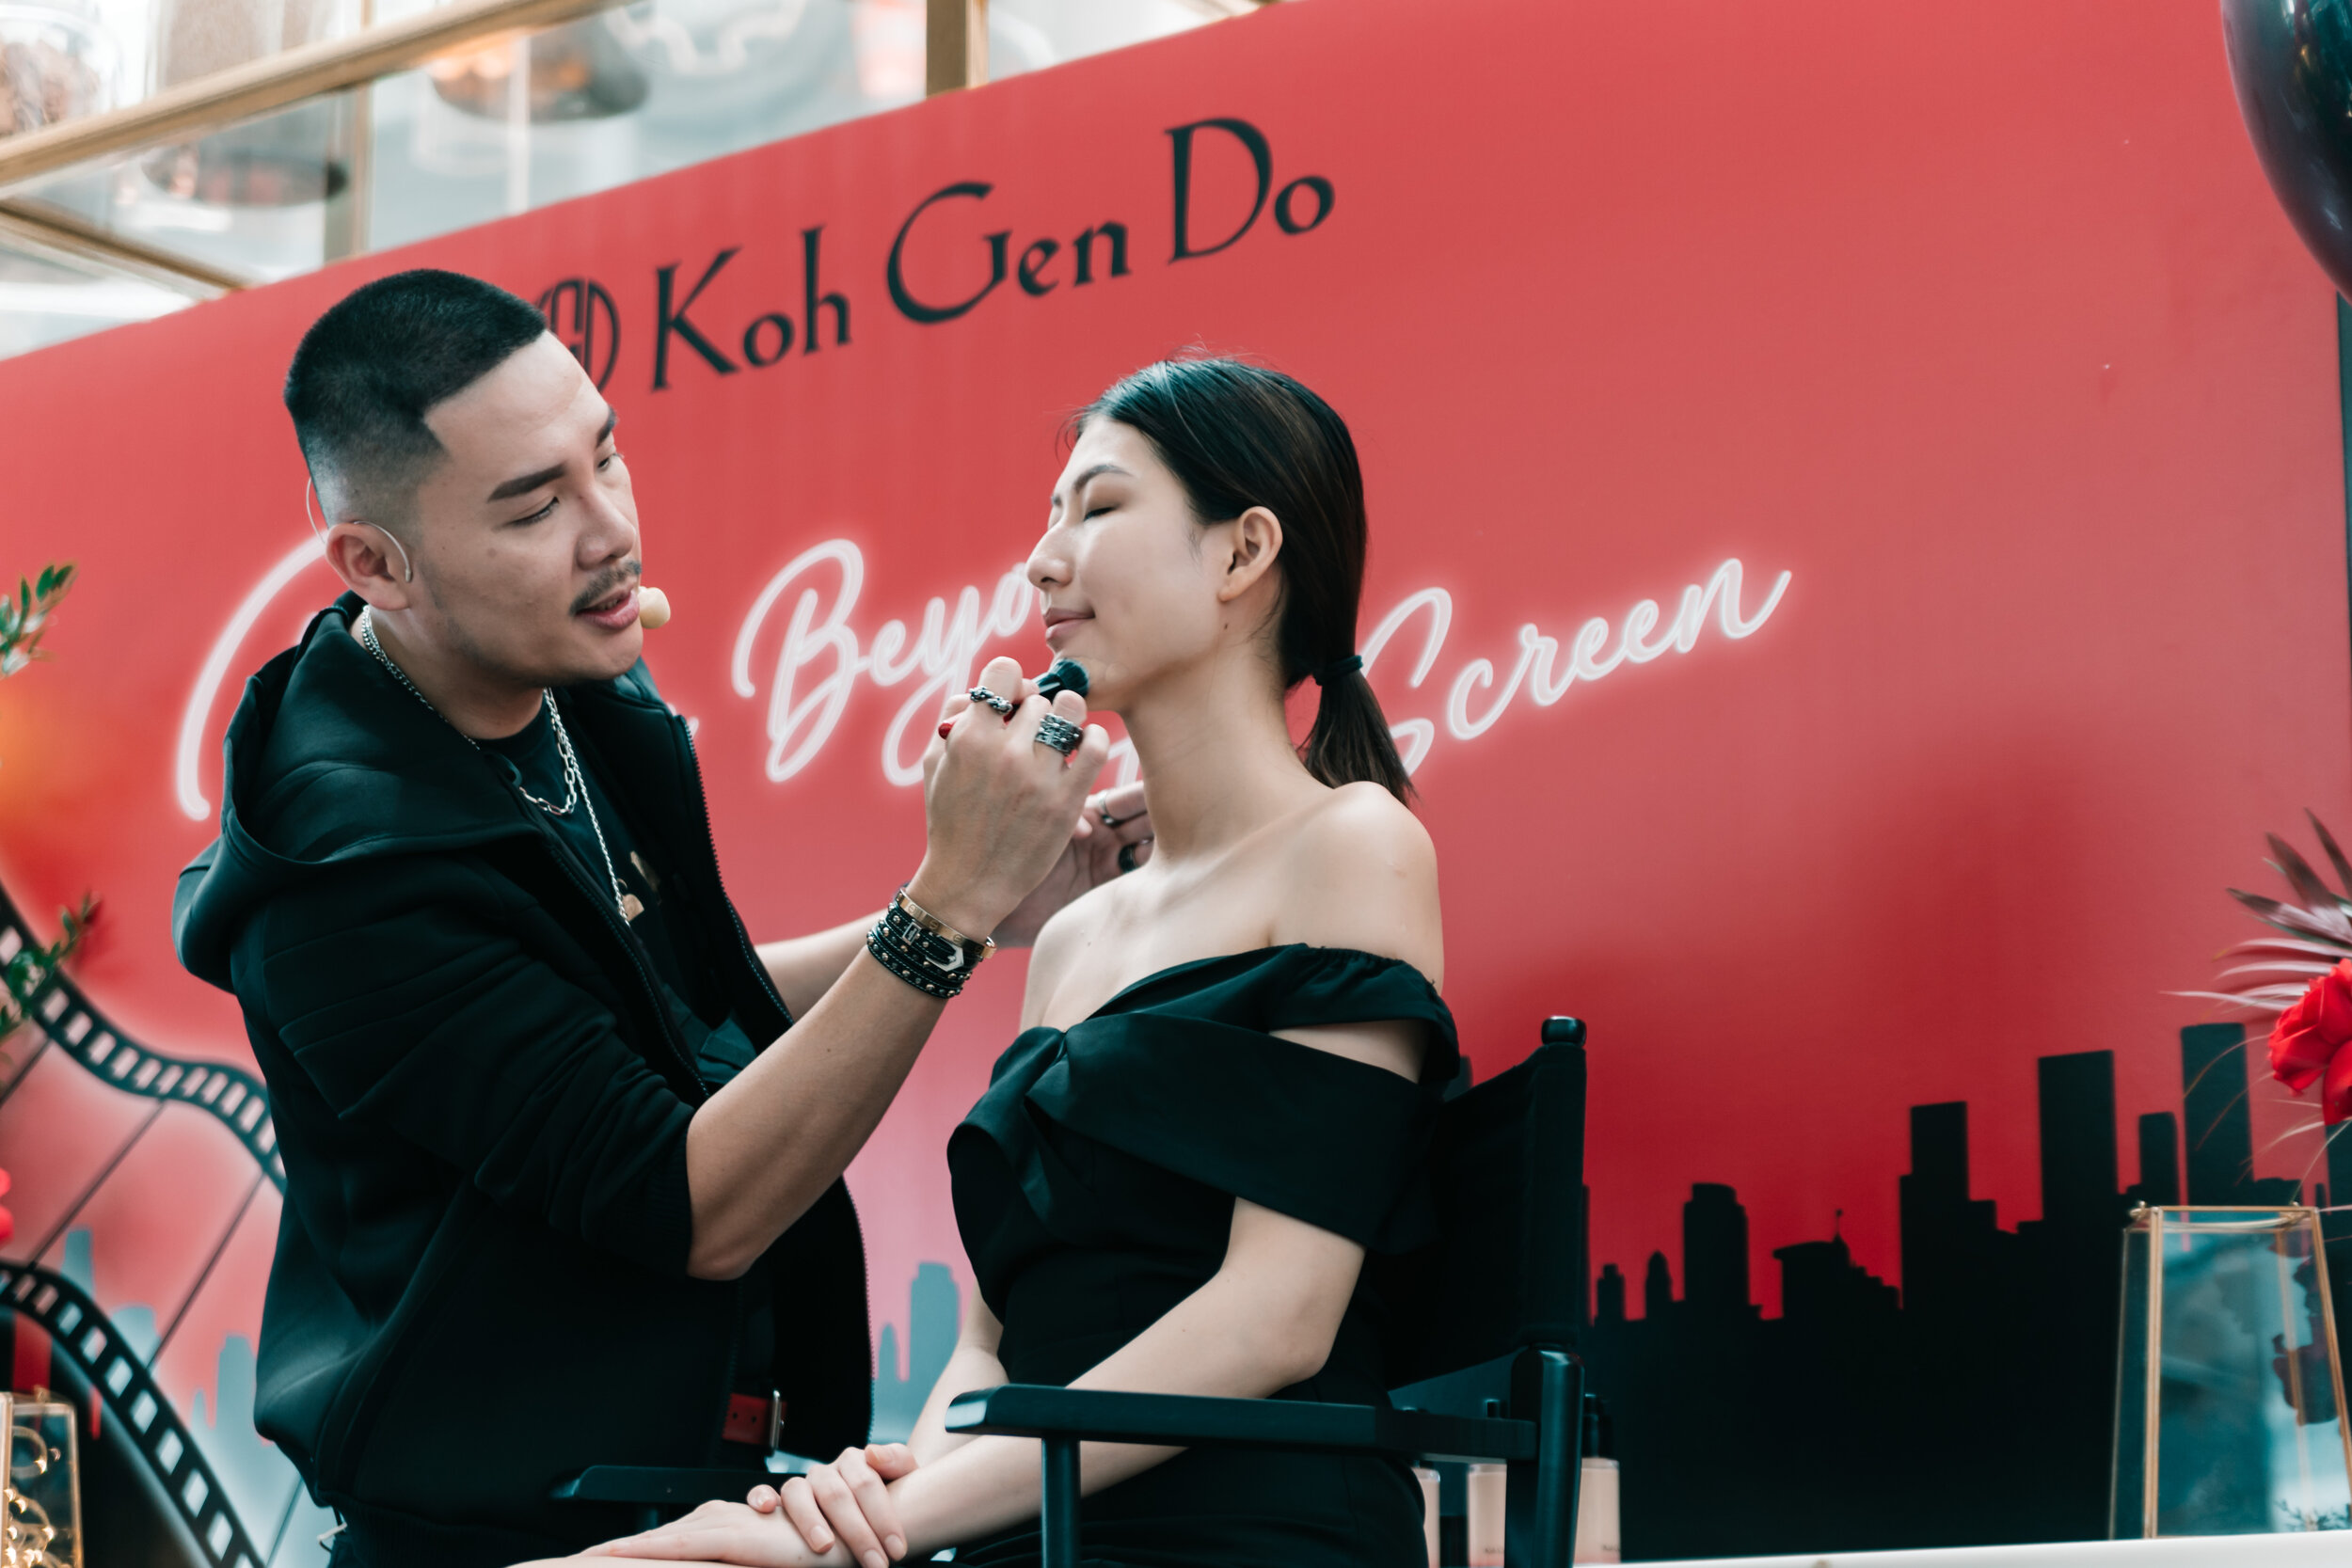 Gary Cheok, Celebrity Makeup Artist shares makeup tips using Koh Gen Do's best sellers, which integrates the planet's most precious botanicals with Japanese skincare technology to nourish and protect one's complexion's natural ability to regenerate.